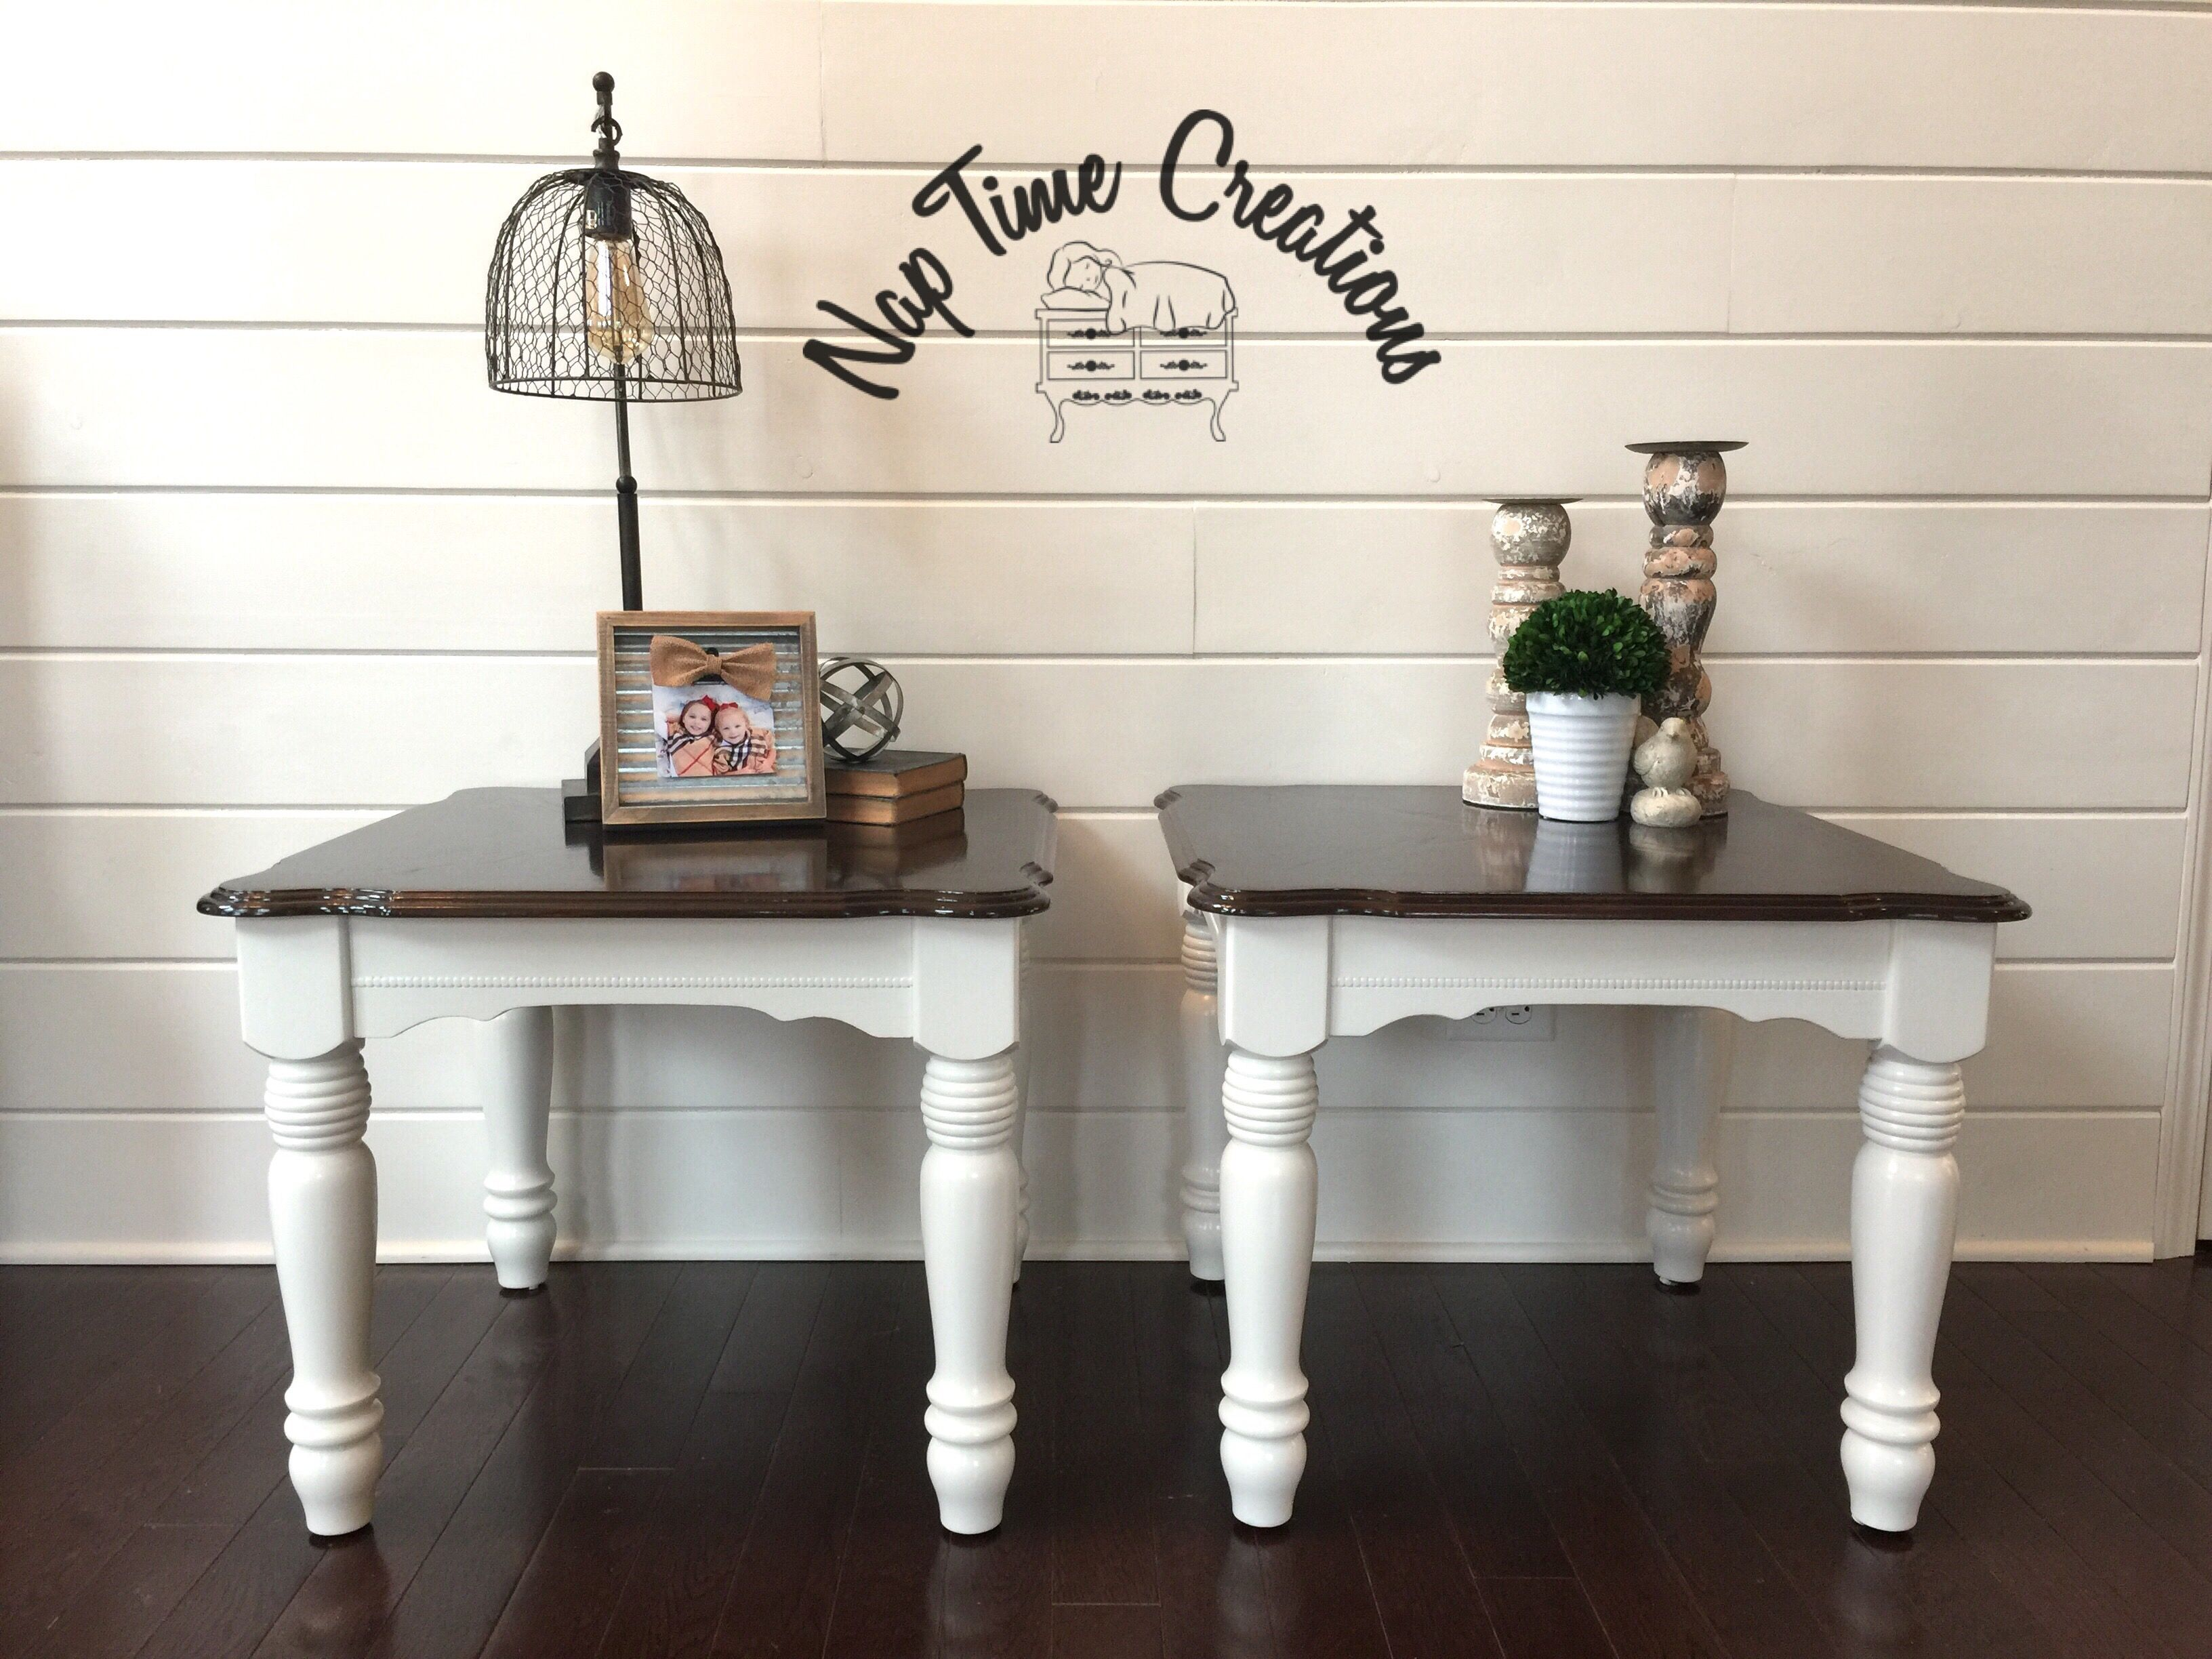 End table refinished in general finishes antique white and